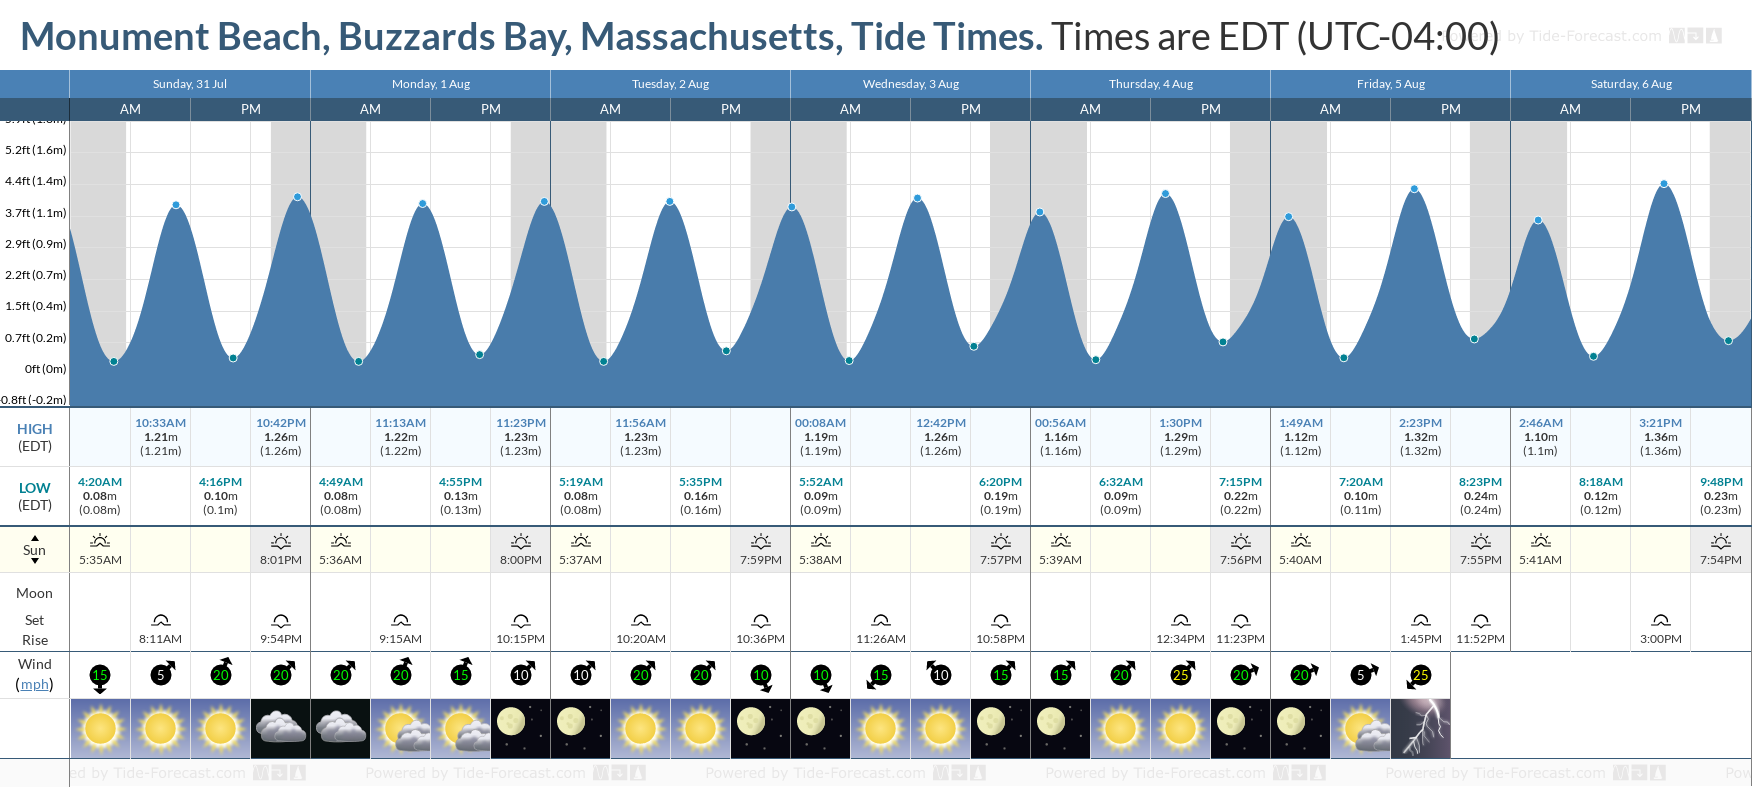 Monument Beach, Buzzards Bay, Massachusetts Tide Chart including high and low tide tide times for the next 7 days